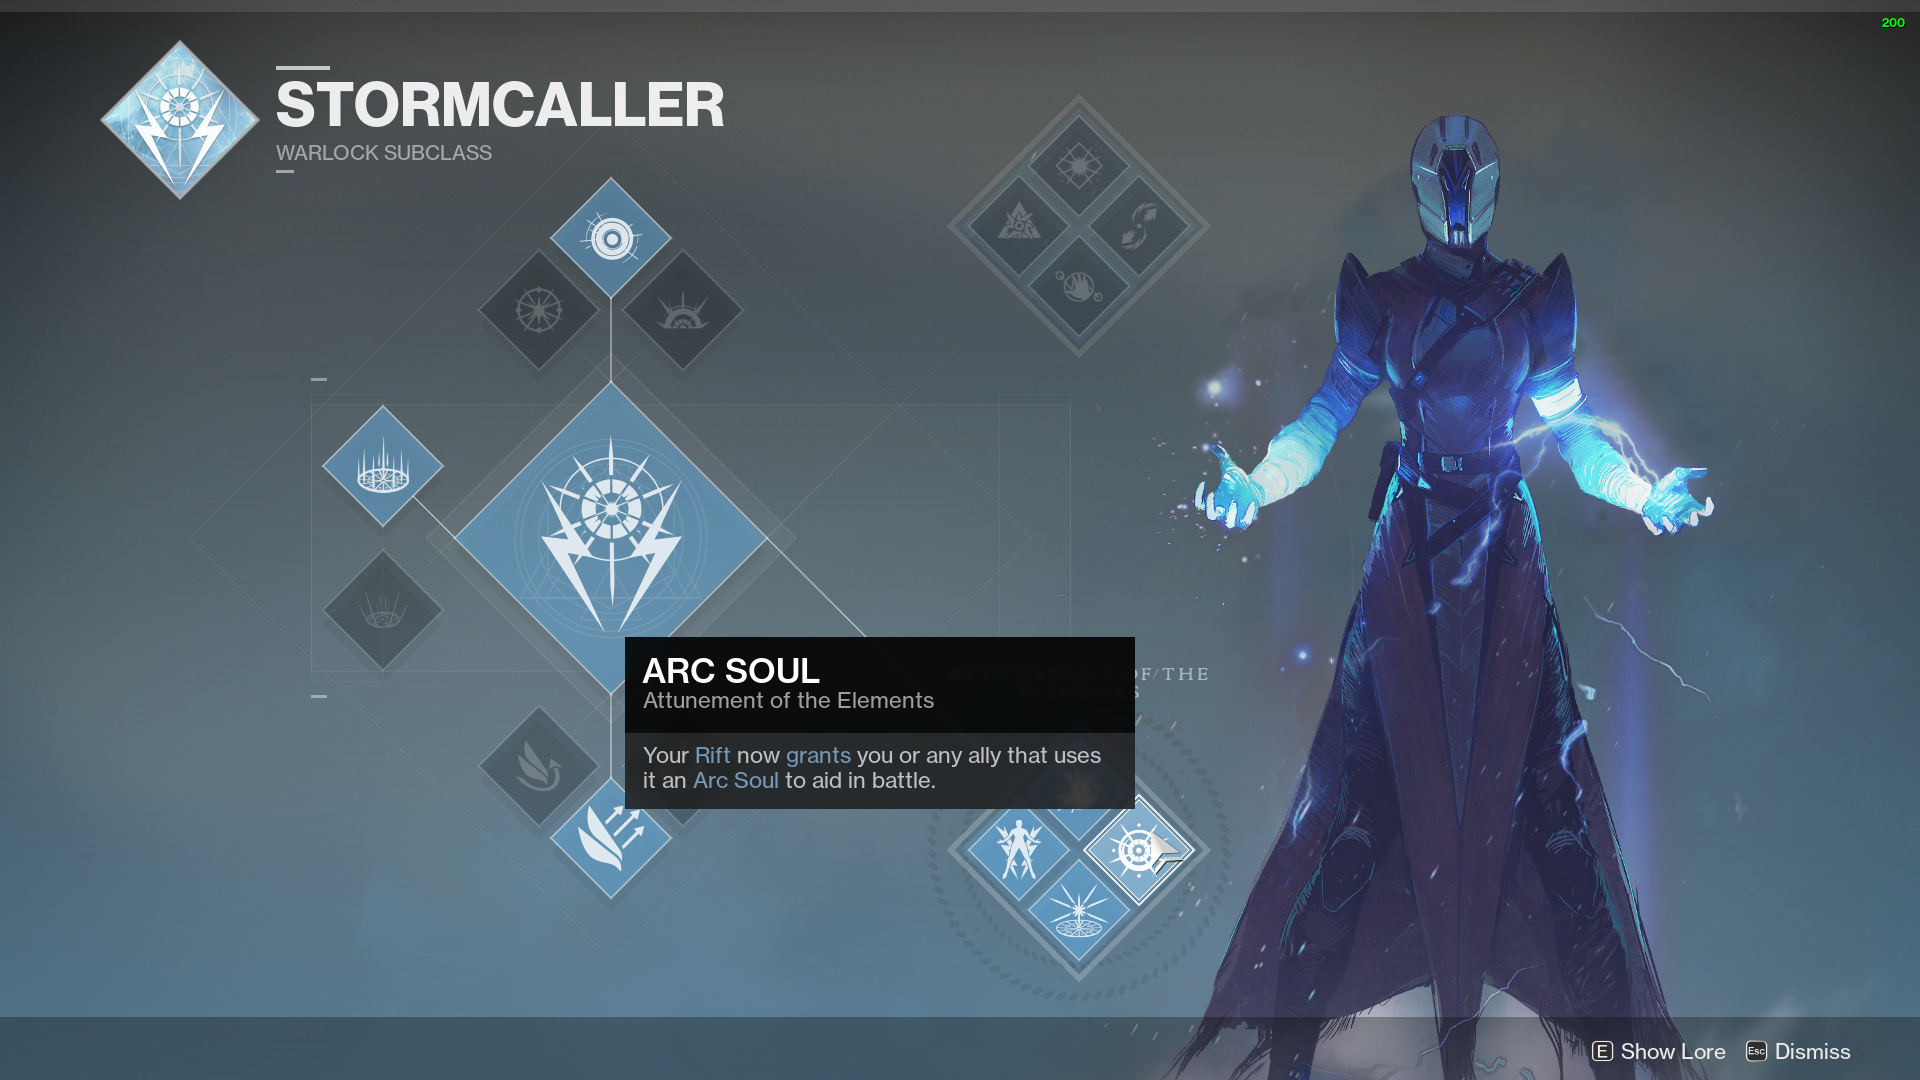 The Arc Soul Has A Simple To Understand Description Your Rift Now Grants You Or Any Ally That Uses It An Aid In Battle